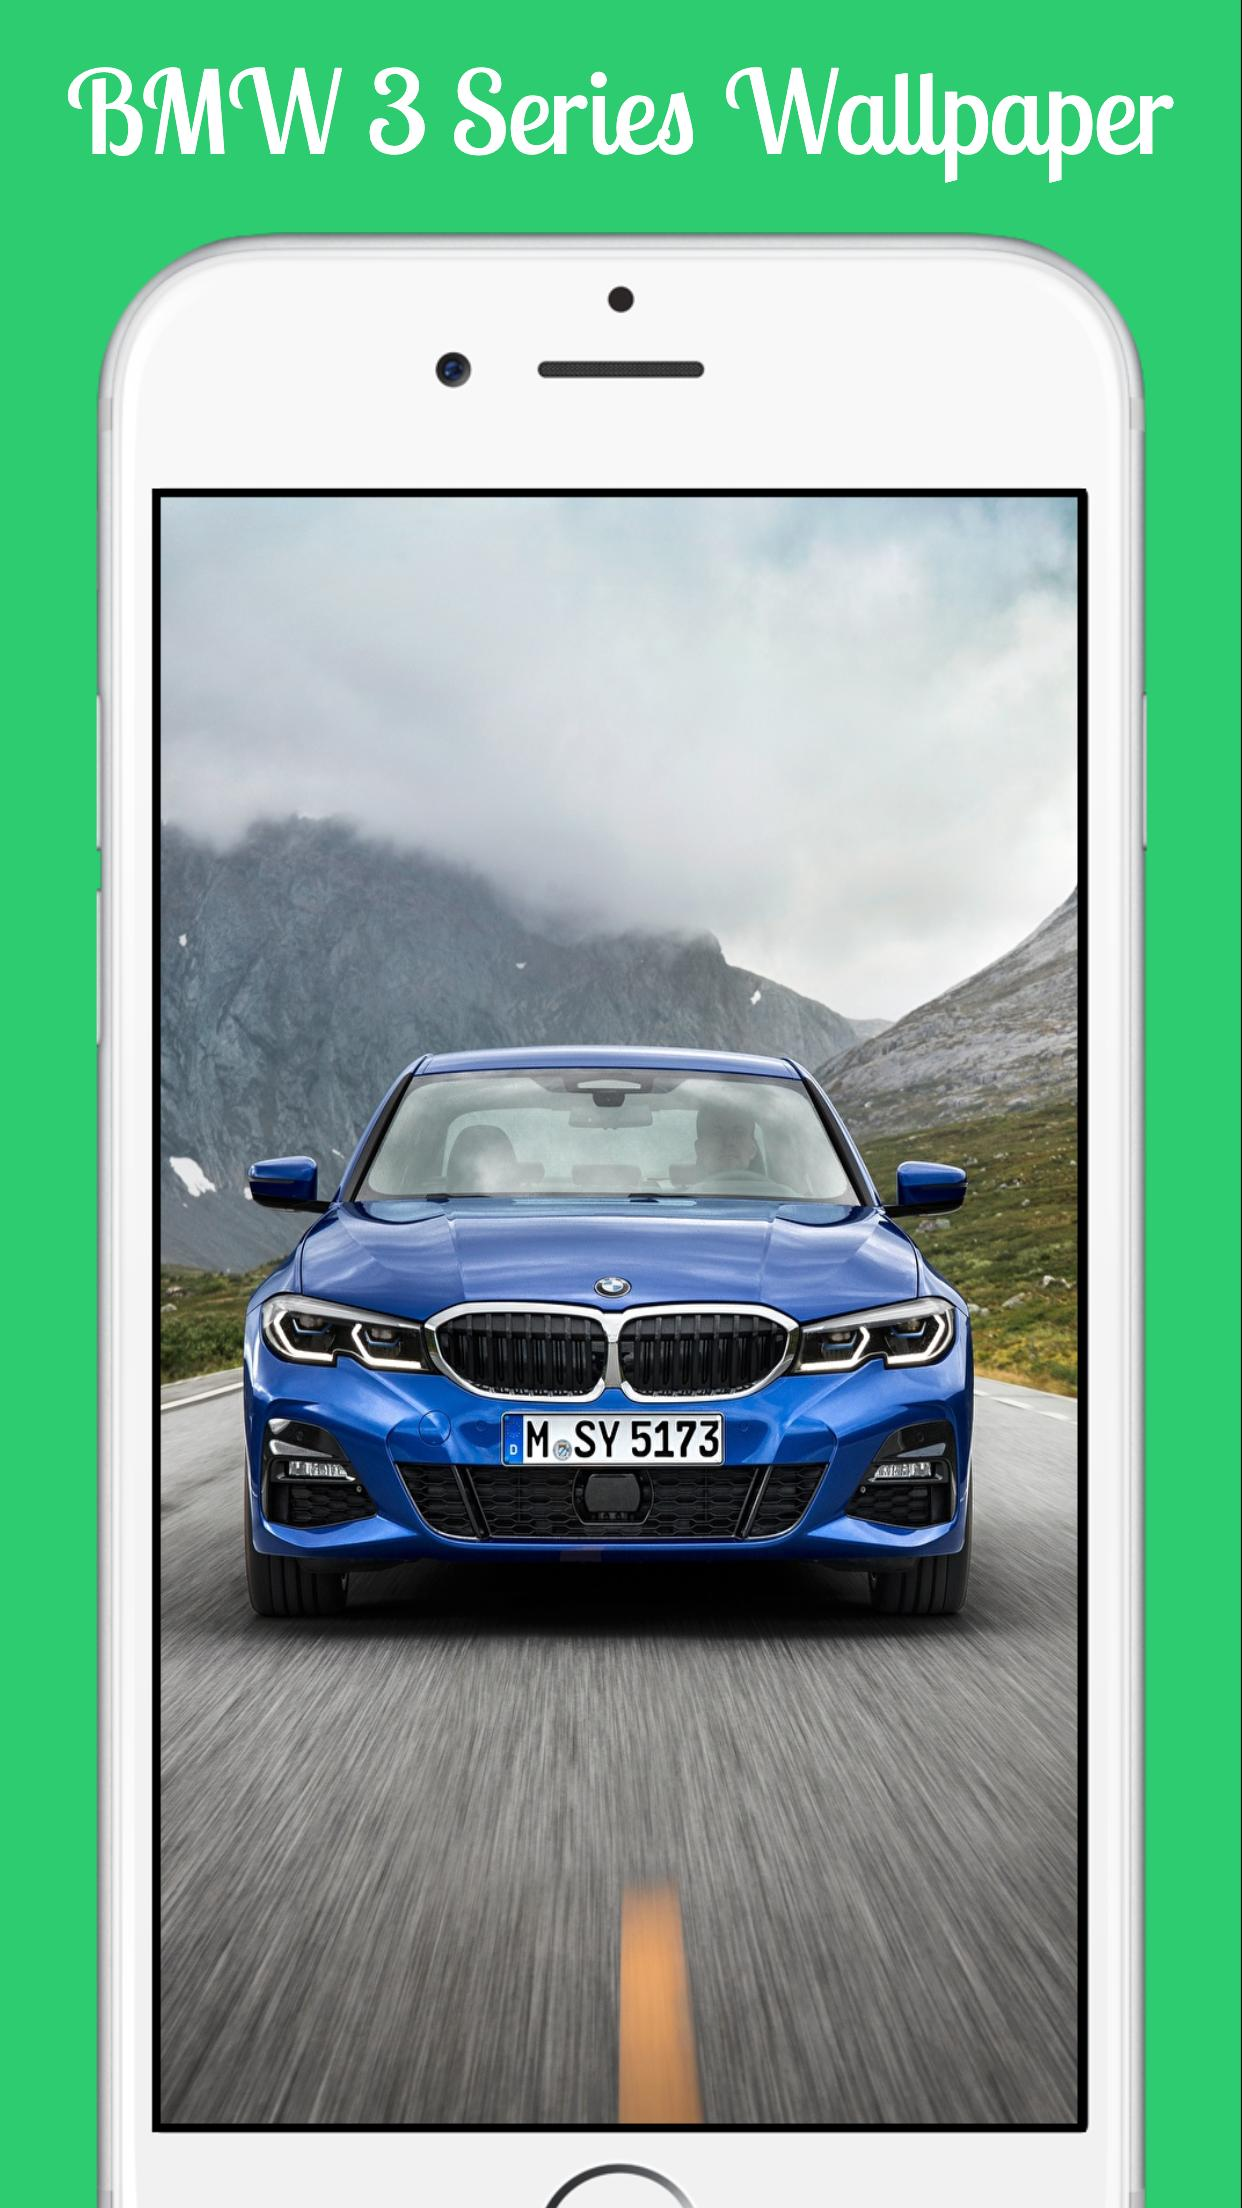 Bmw 3 Series Wallpaper For Android Apk Download